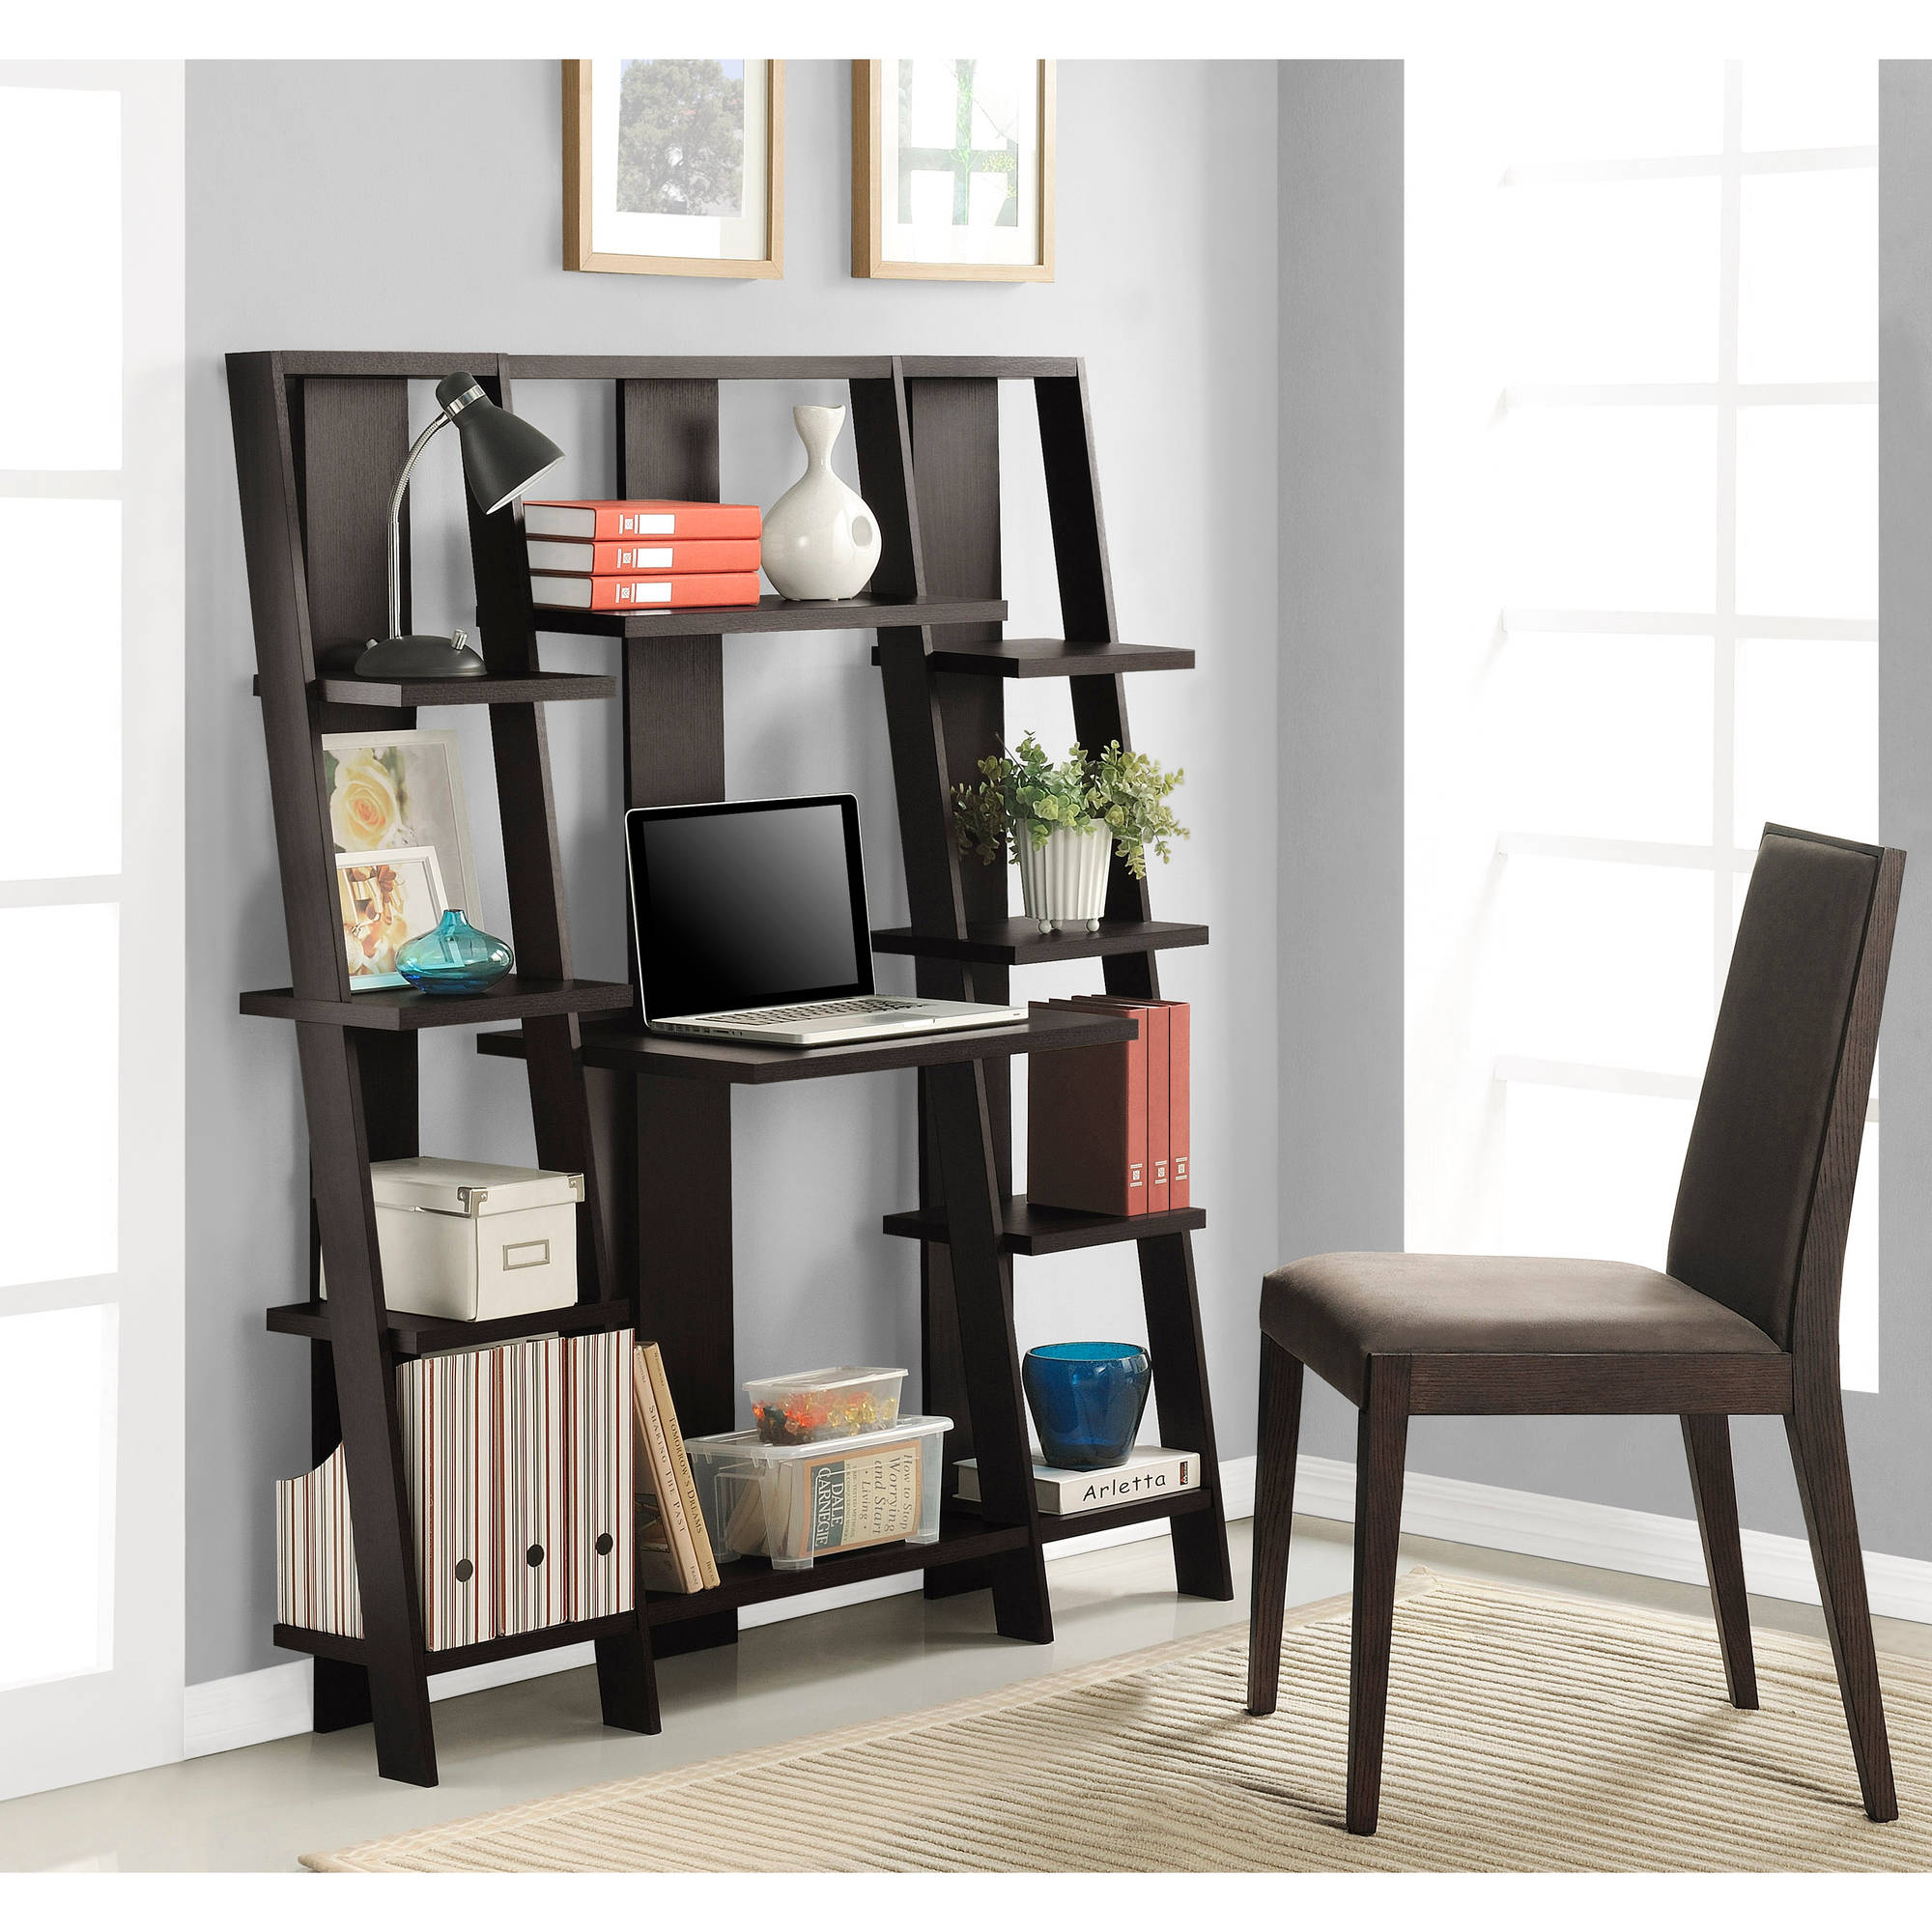 hutch desk hills orchard sauder bookshelf with computer products